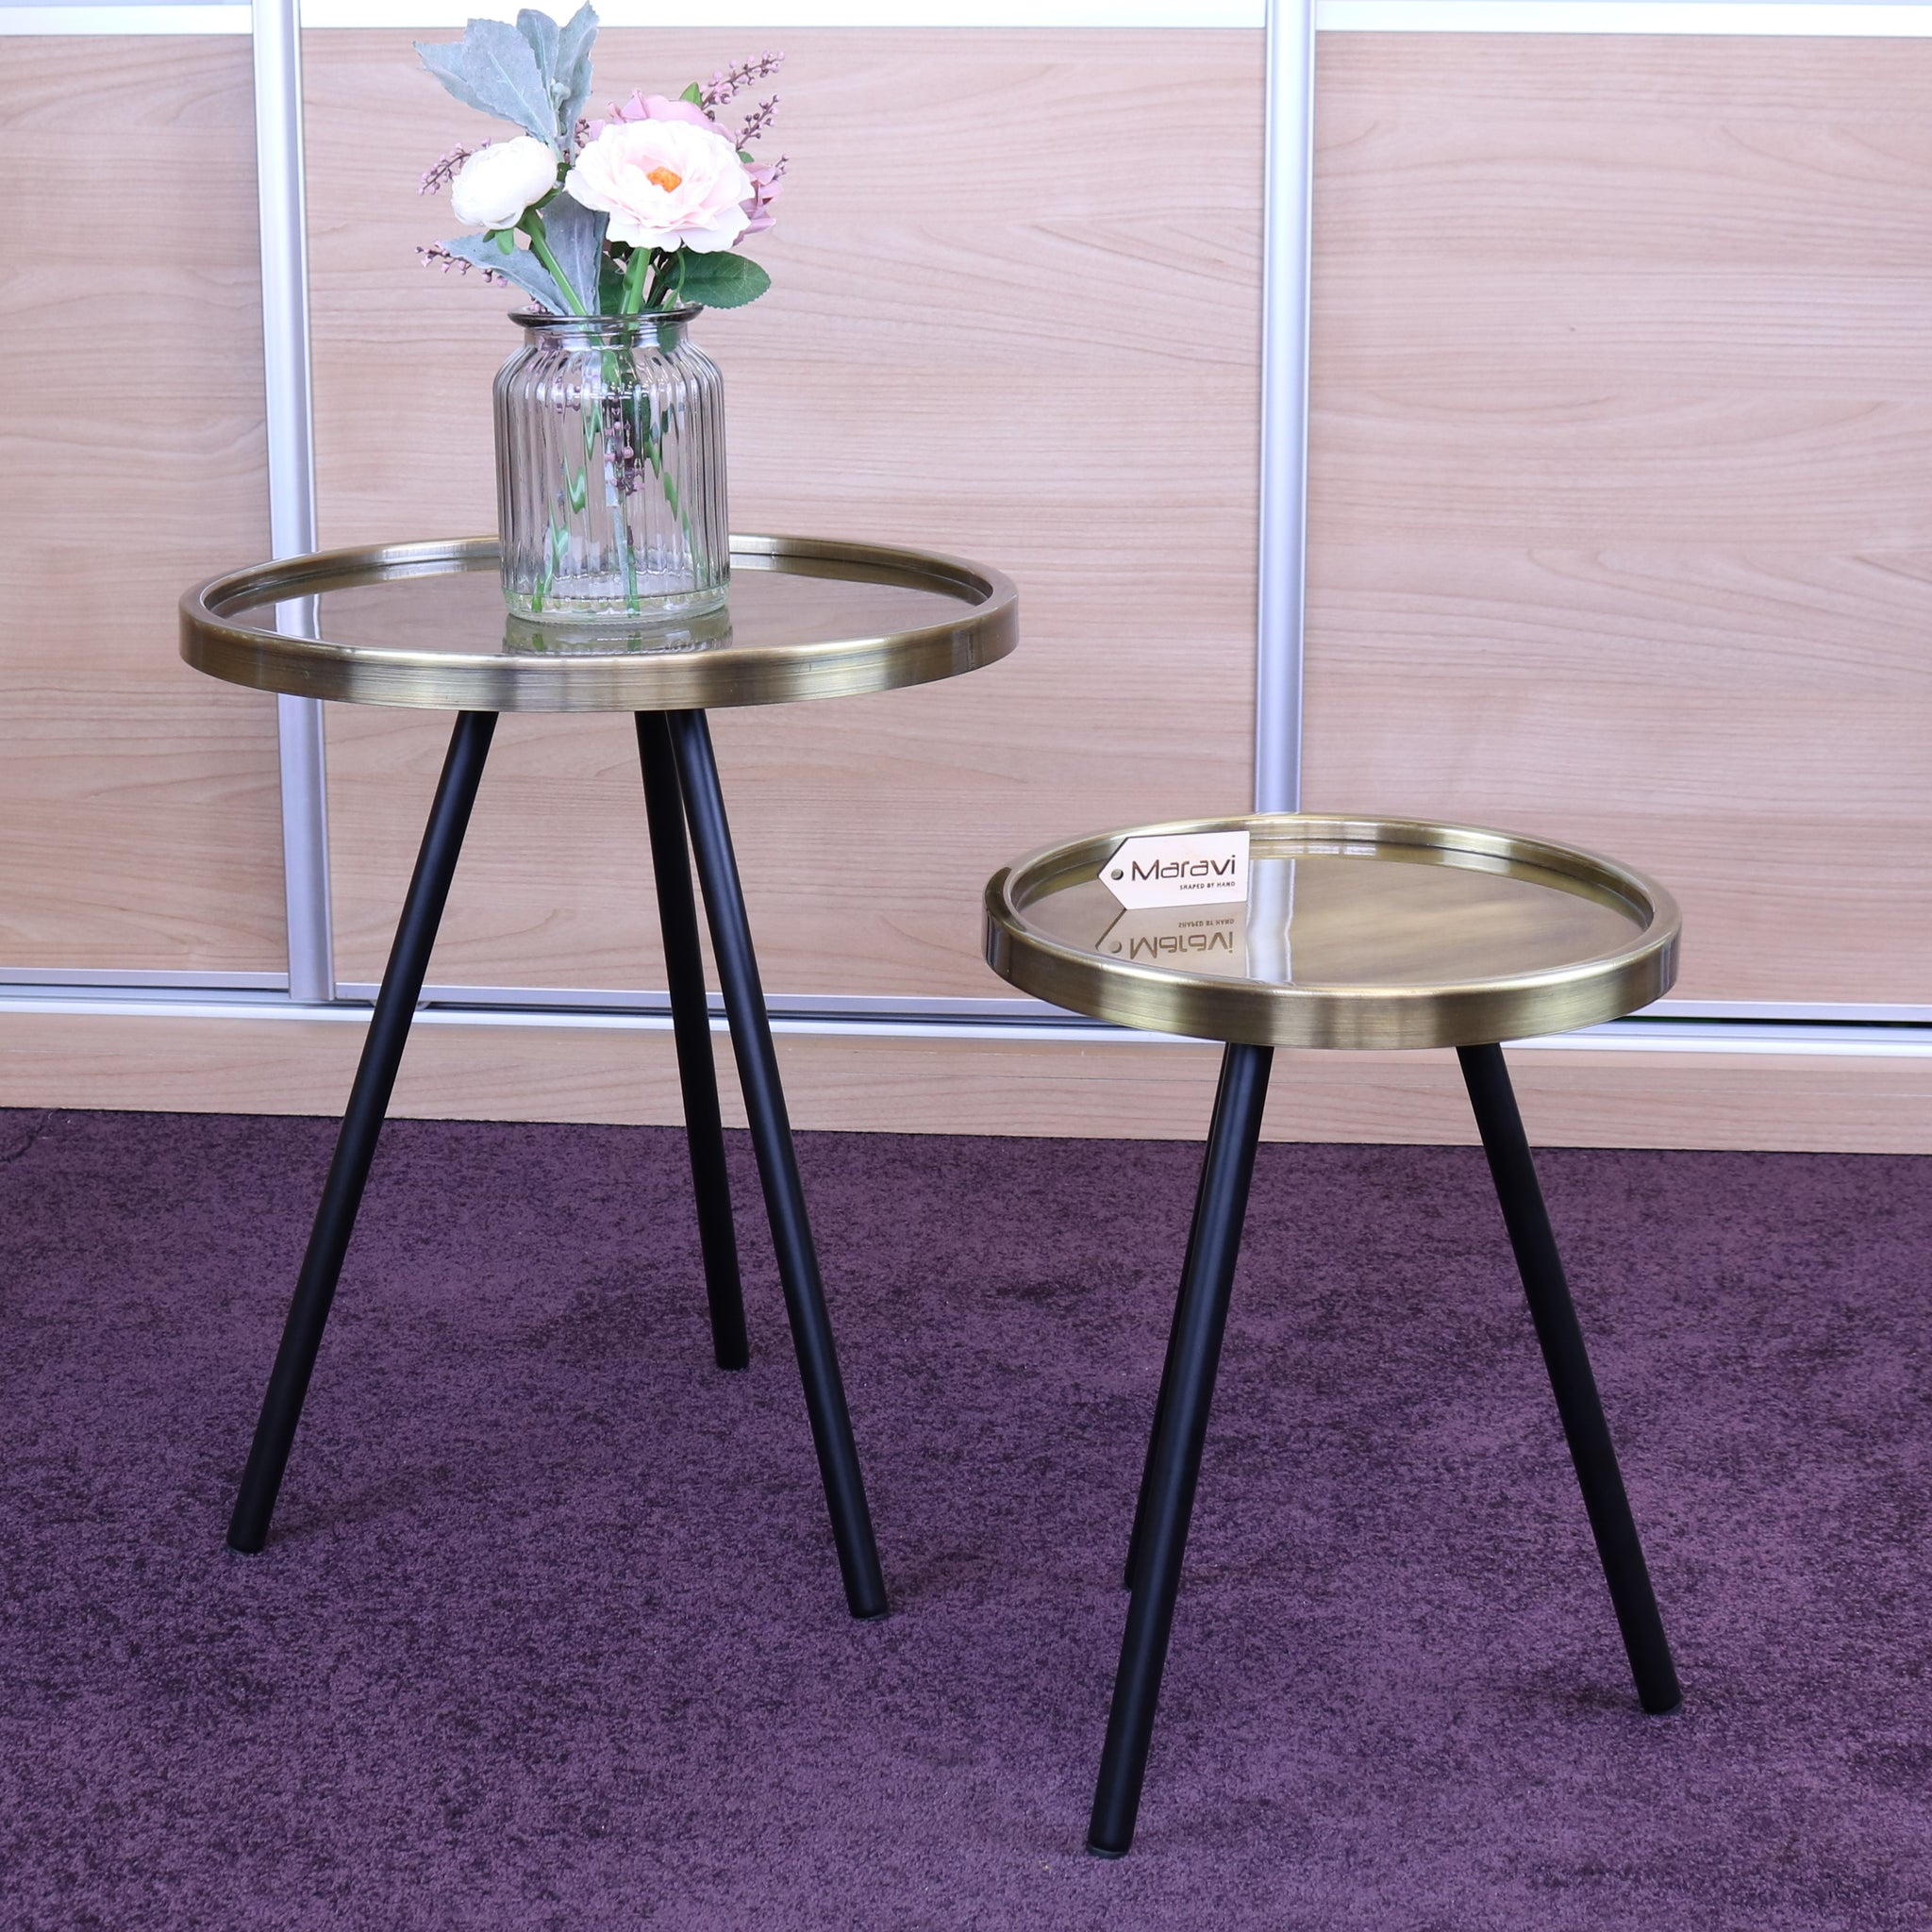 Ari Set of 2 Round Gold Tripod Leg Side Tables